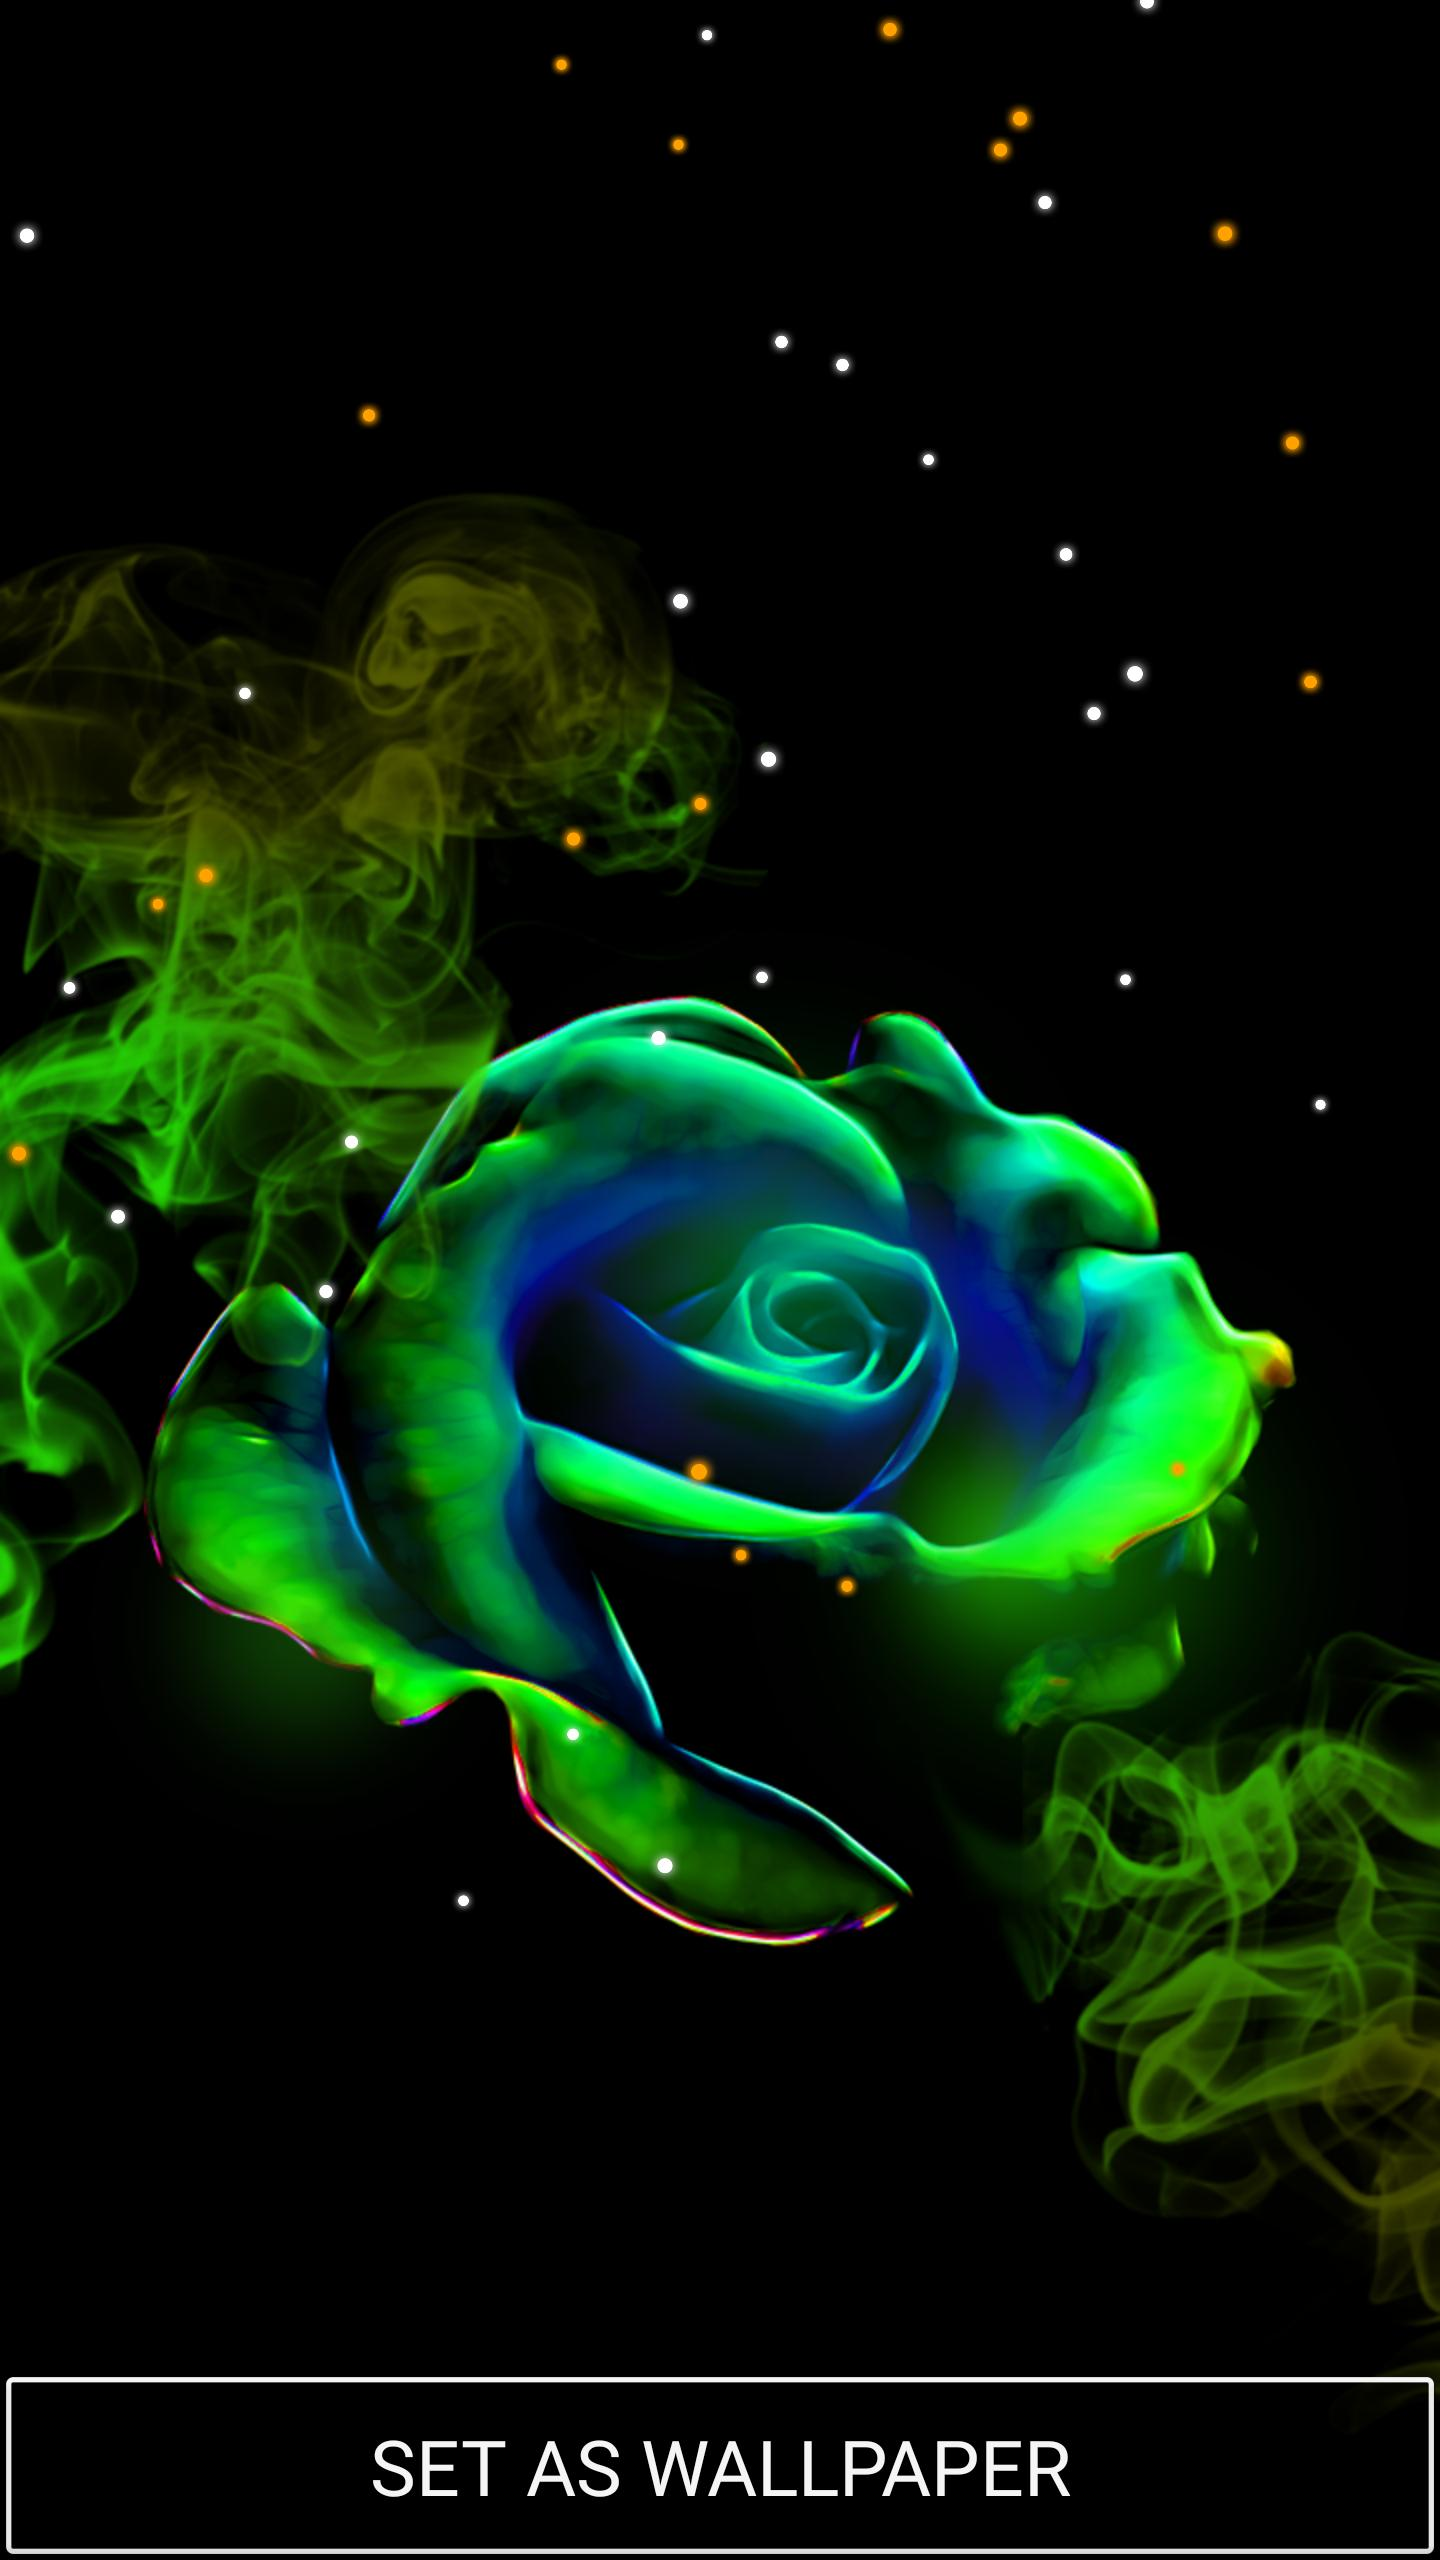 Neon Wallpaper Hidup Hd For Android Apk Download